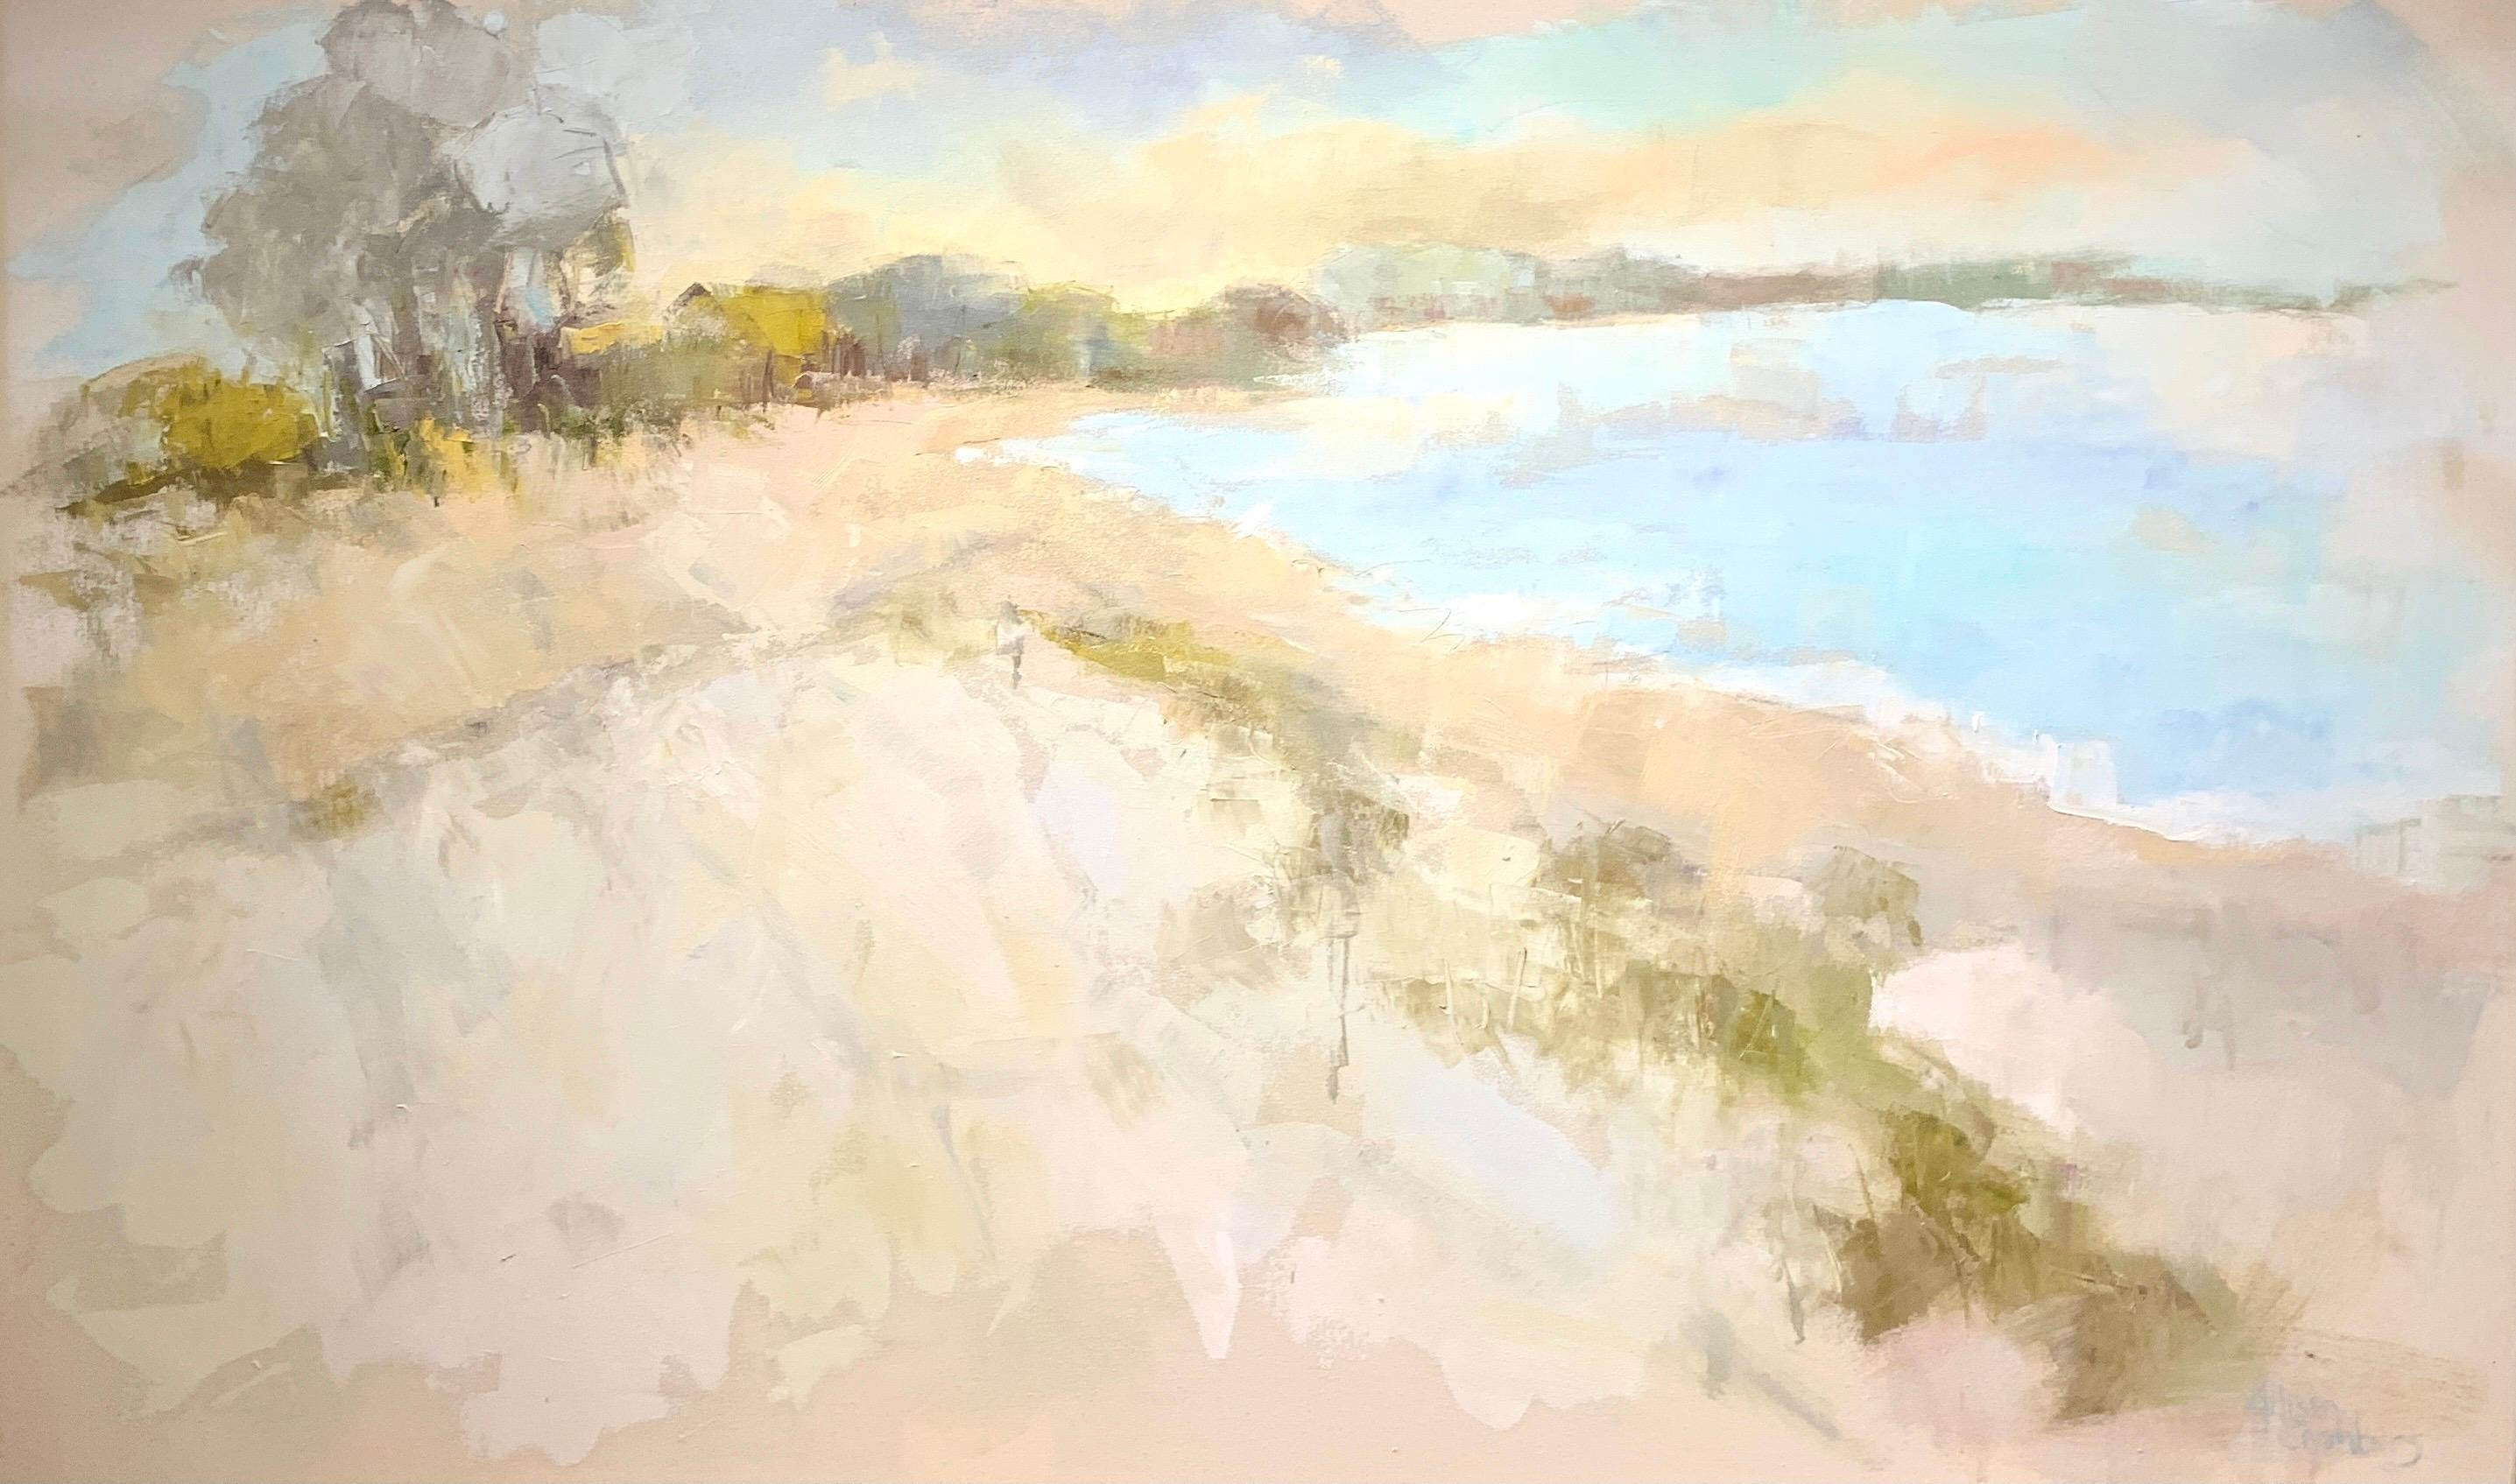 Coastal Vibes by Allison Chambers, Oil on Canvas Impressionist Beach Painting